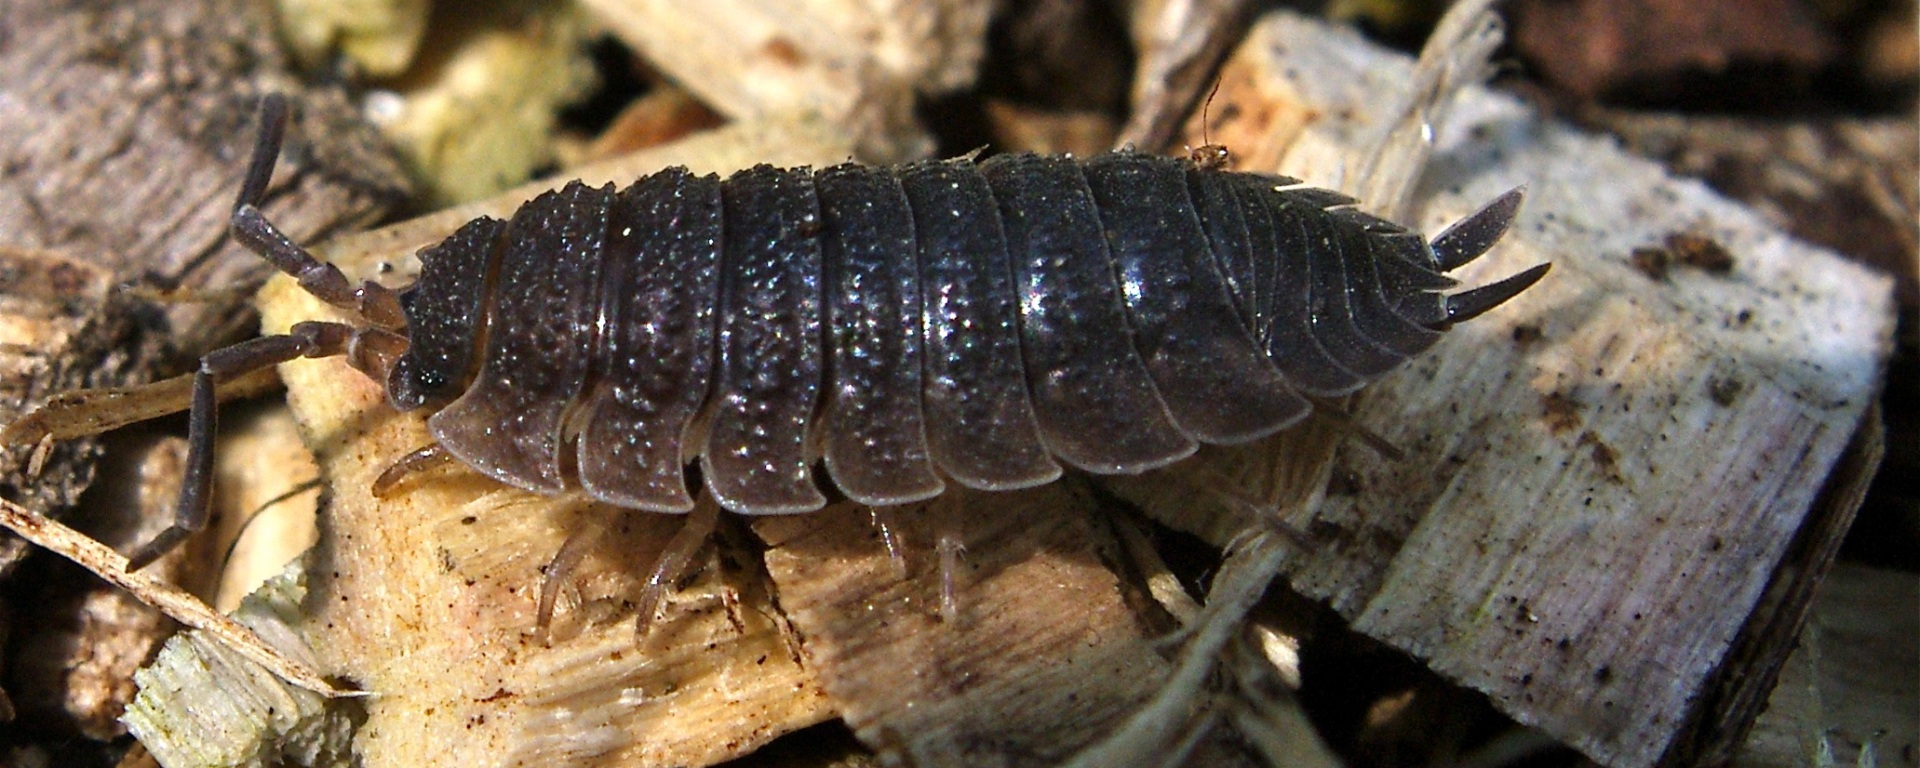 Woodlouse on wood chippings